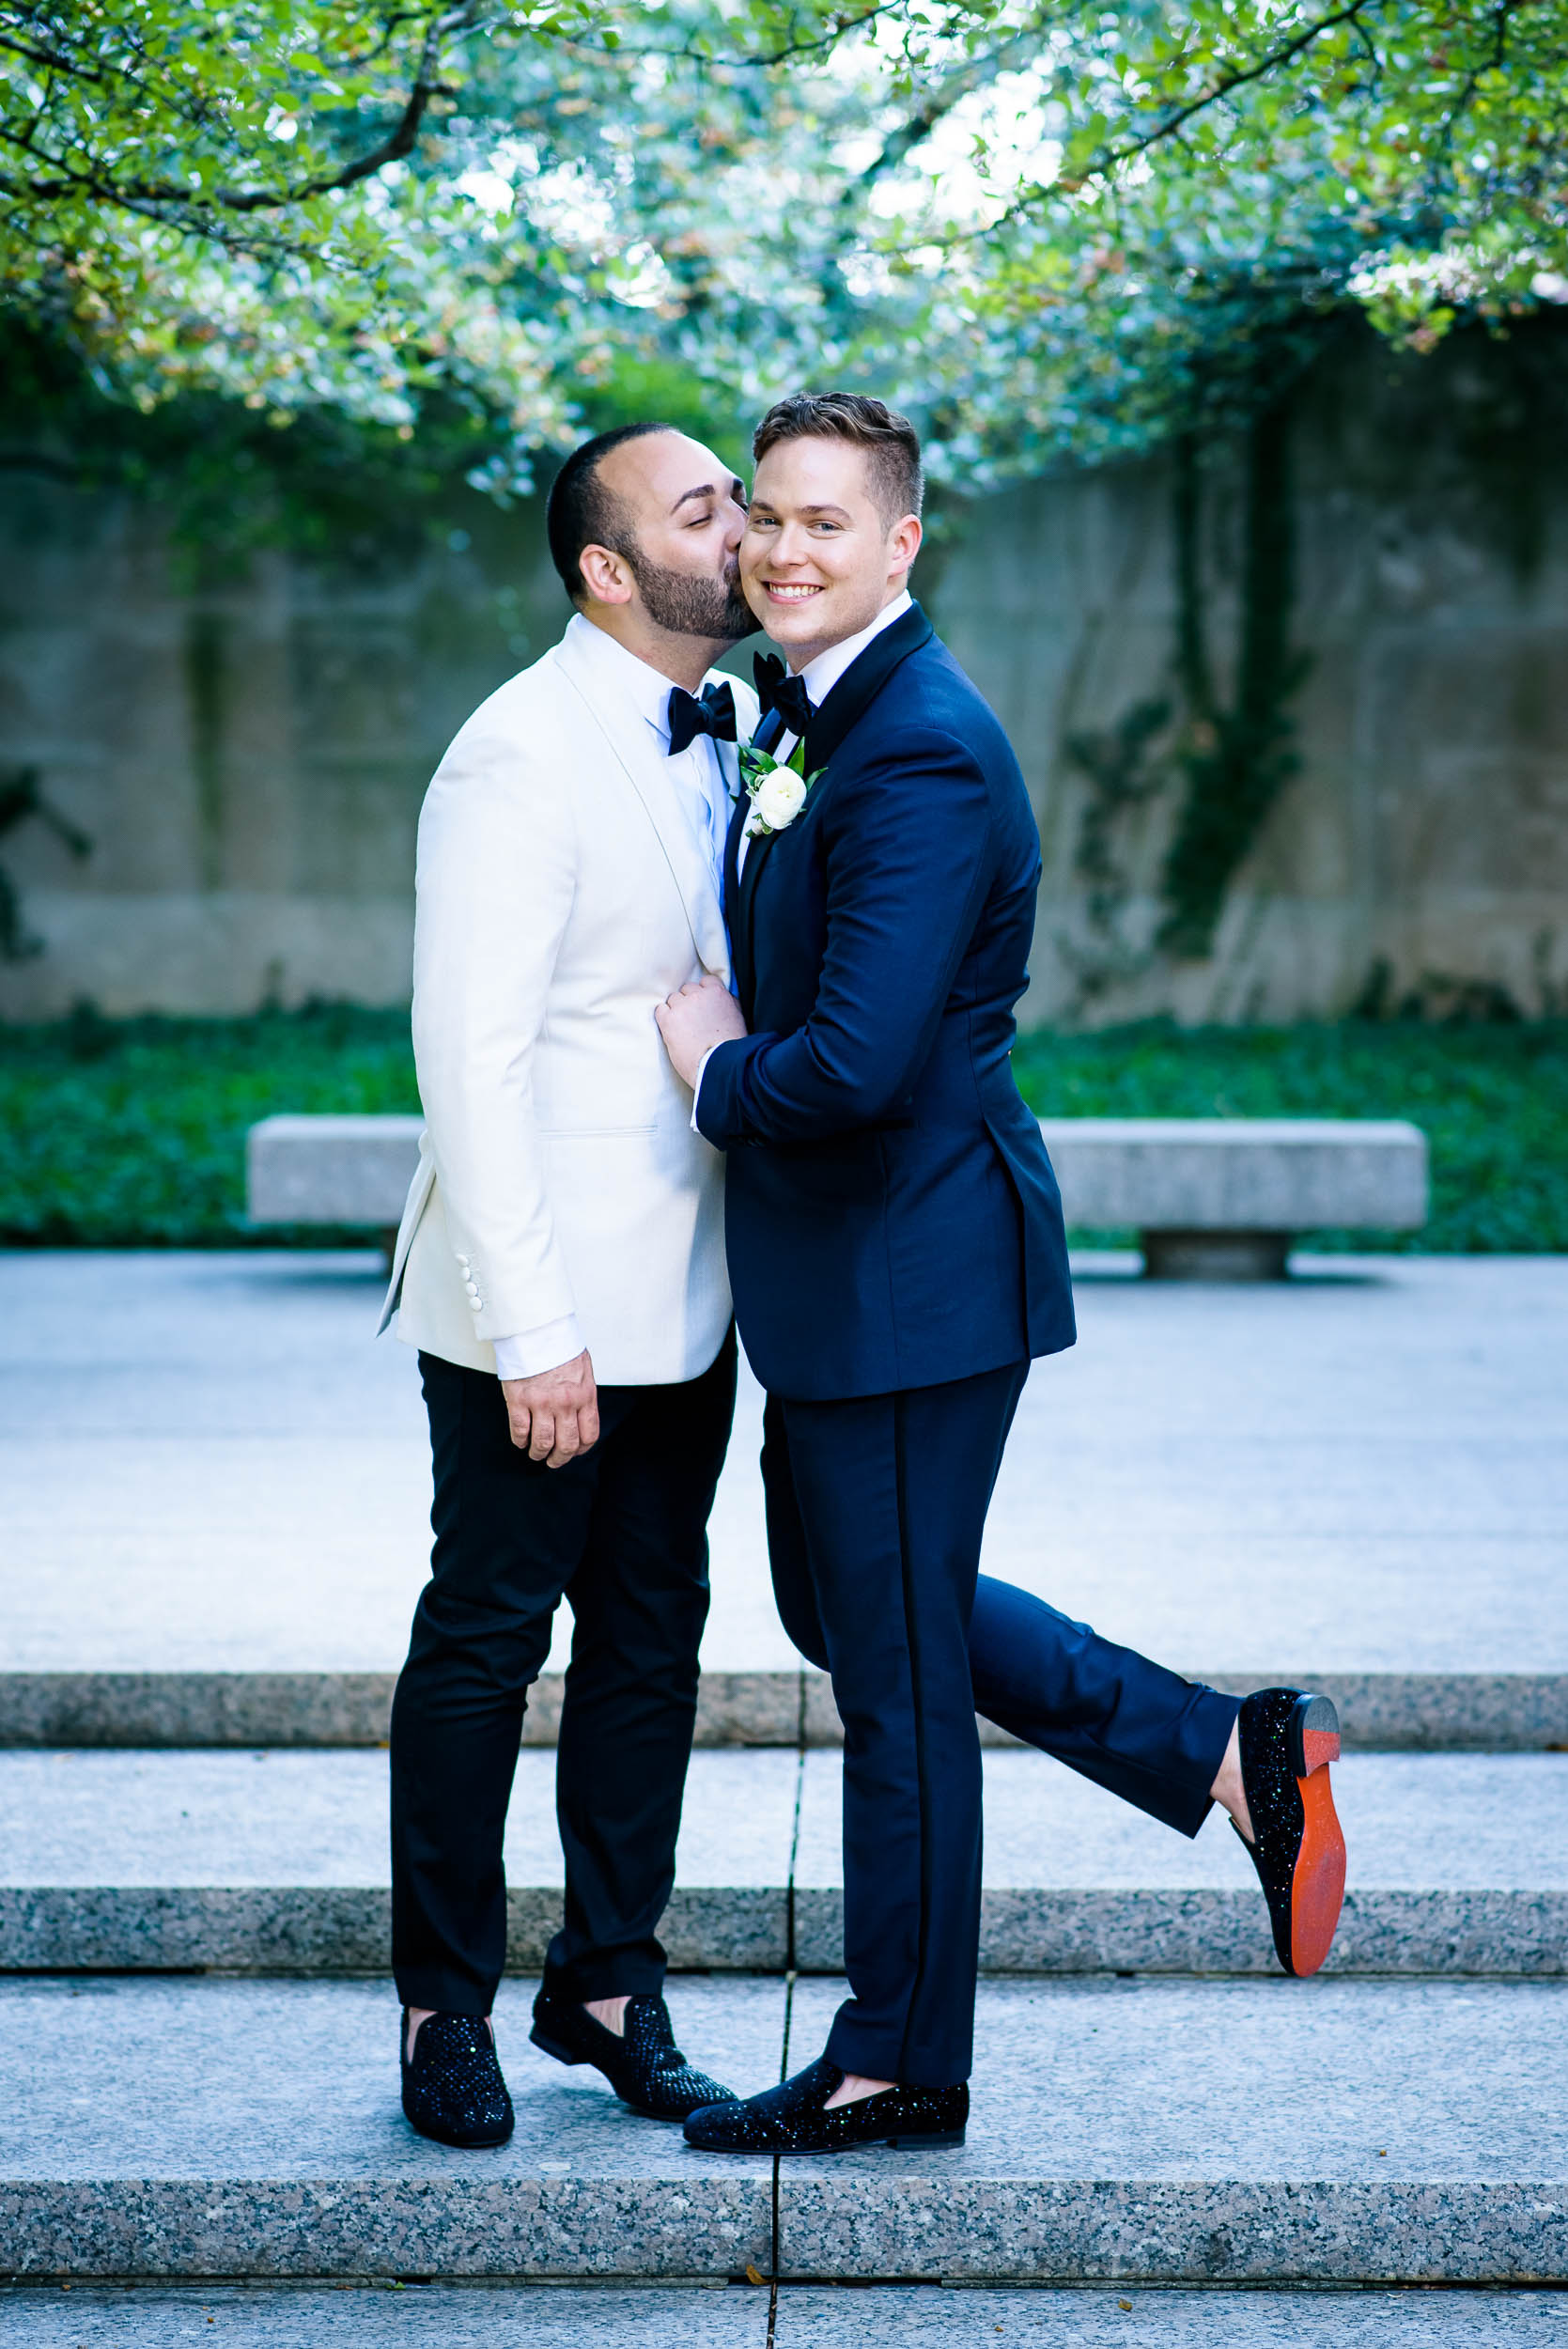 Outdoor wedding photos for same-sex, luxurious fall wedding at the Chicago Symphony Center captured by J. Brown Photography. See more wedding ideas at jbrownphotography.com!